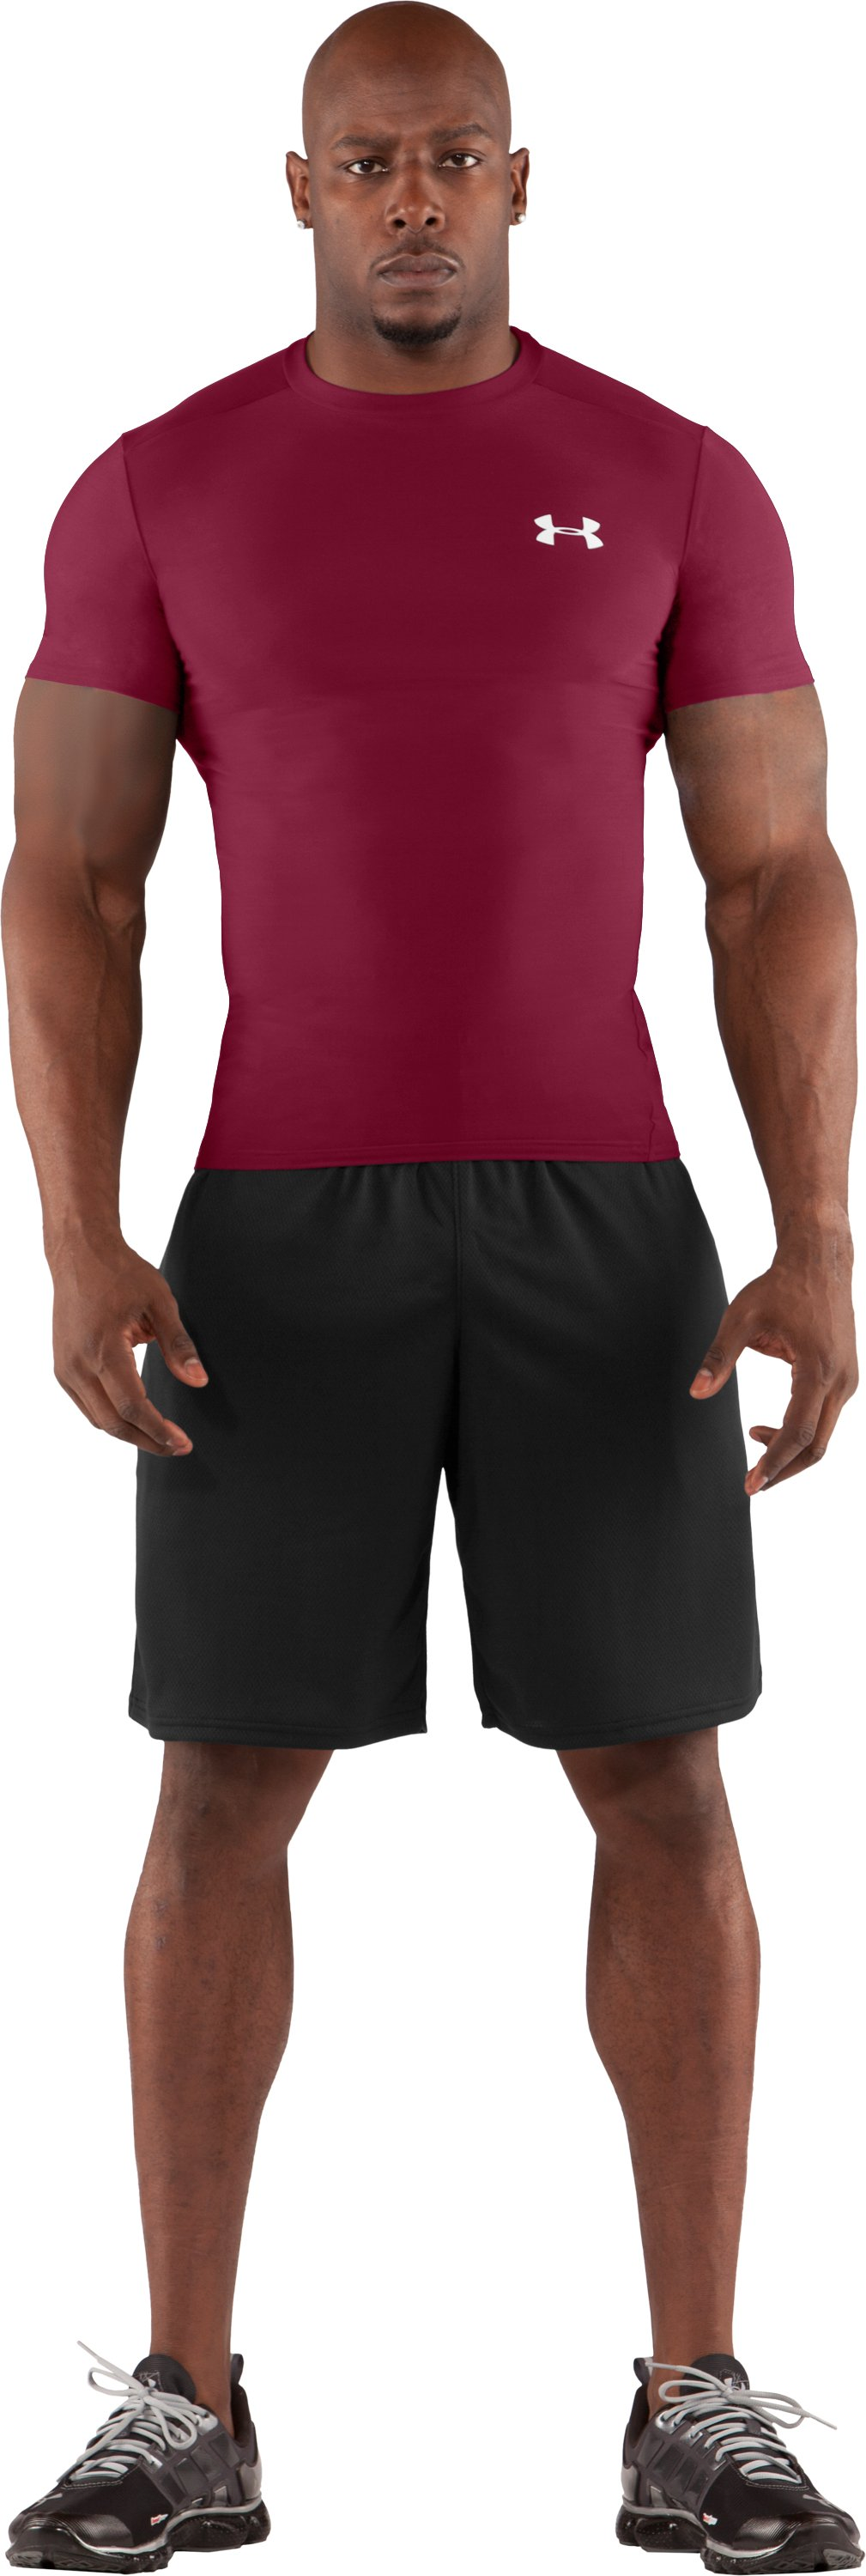 Men's HeatGear® Compression Short Sleeve T-Shirt, Maroon, zoomed image